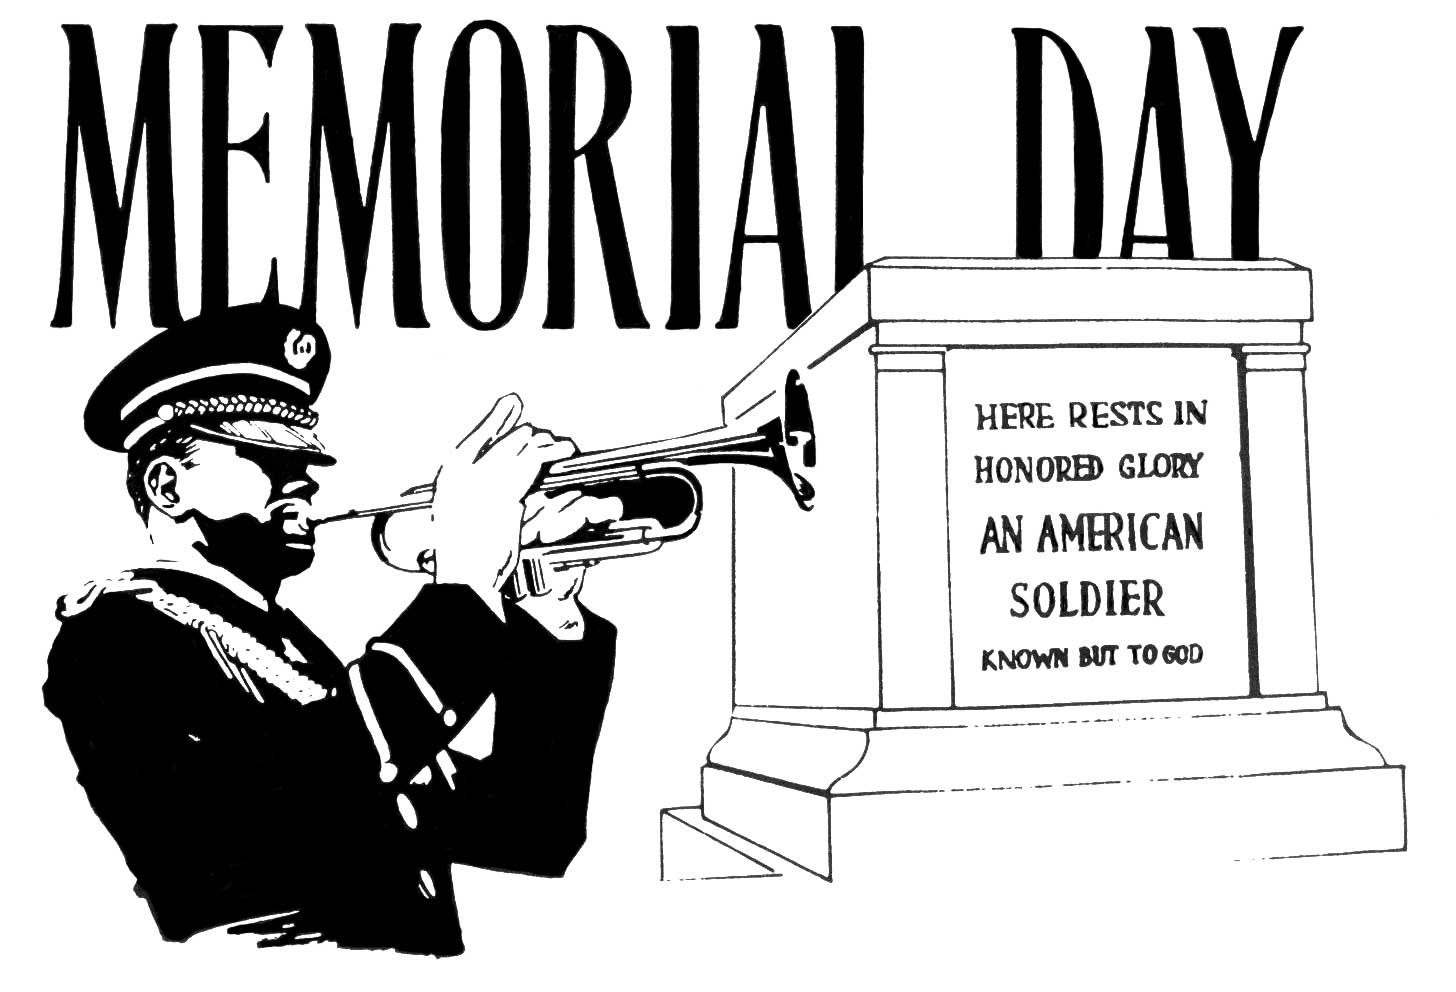 Memorial Day Honored Public Domain Clip Art Photos And Images